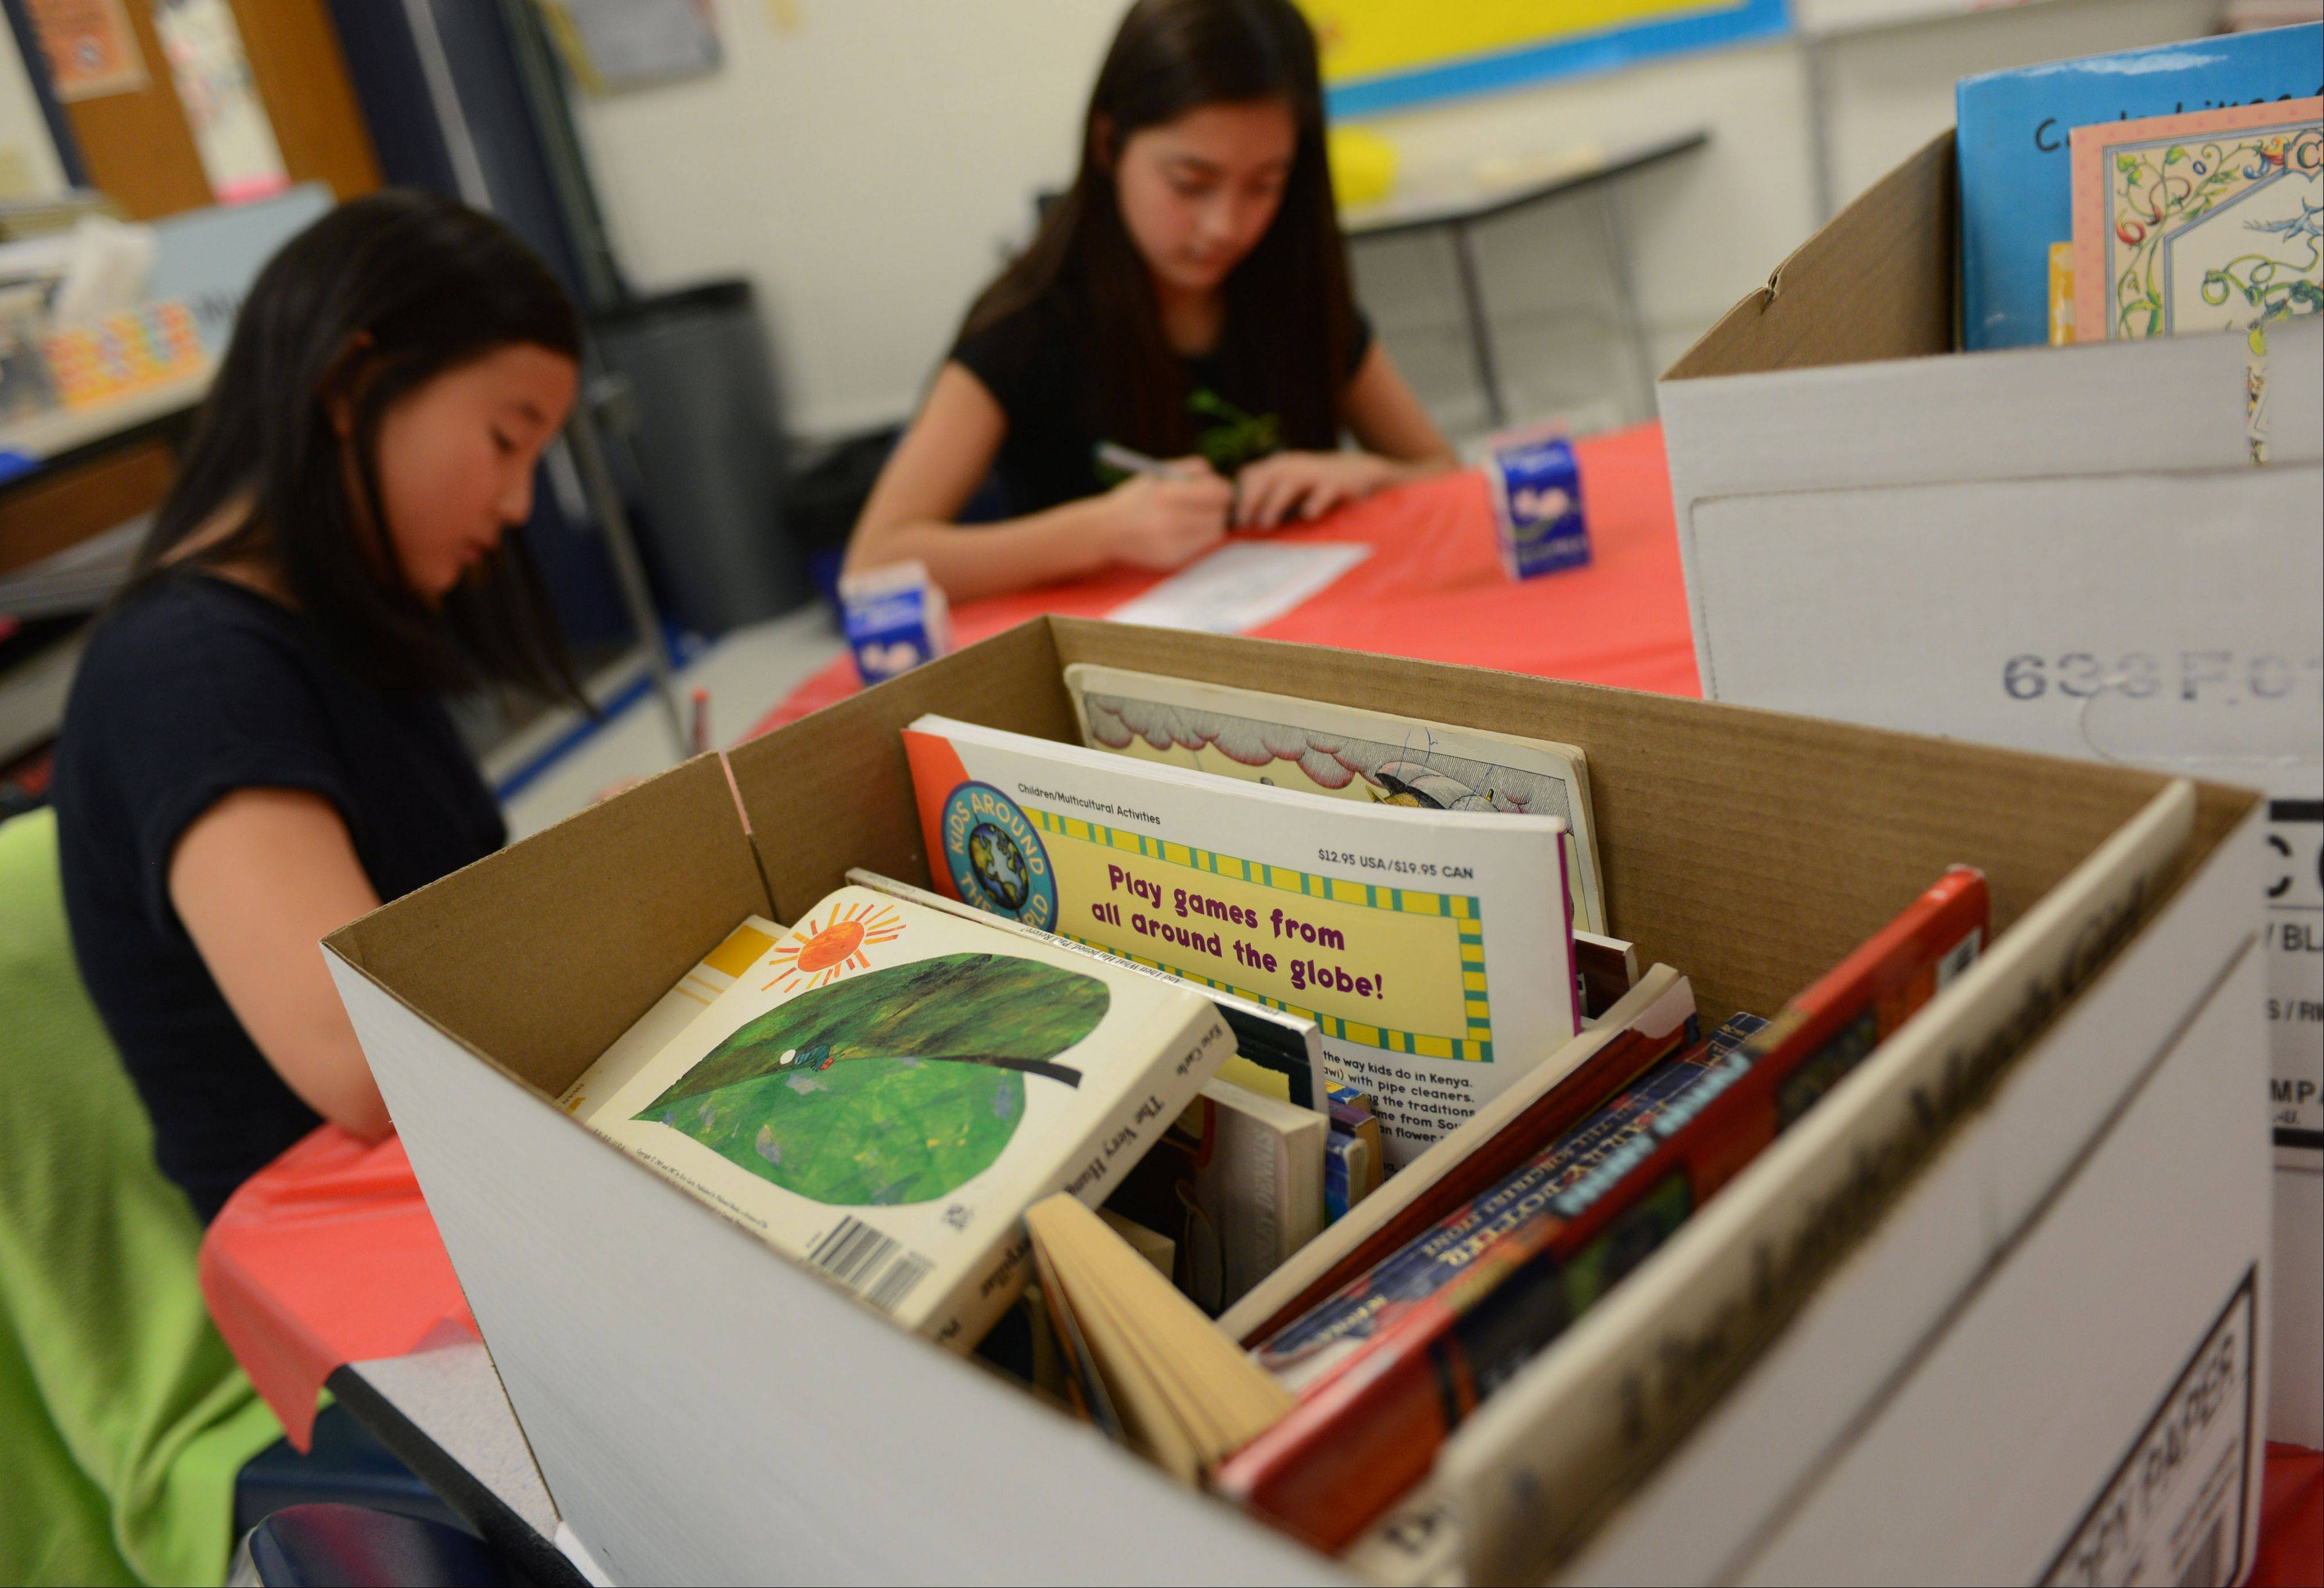 Hawthorn Middle School North sixth grade students in Rachel Serlin's Language Arts classes, including Ellie Kim, left, and Iviiy Salazar, collected around 500 books to donate to PADS Lake County. The collection was part of a nationwide literacy program called Milk + Bookies.